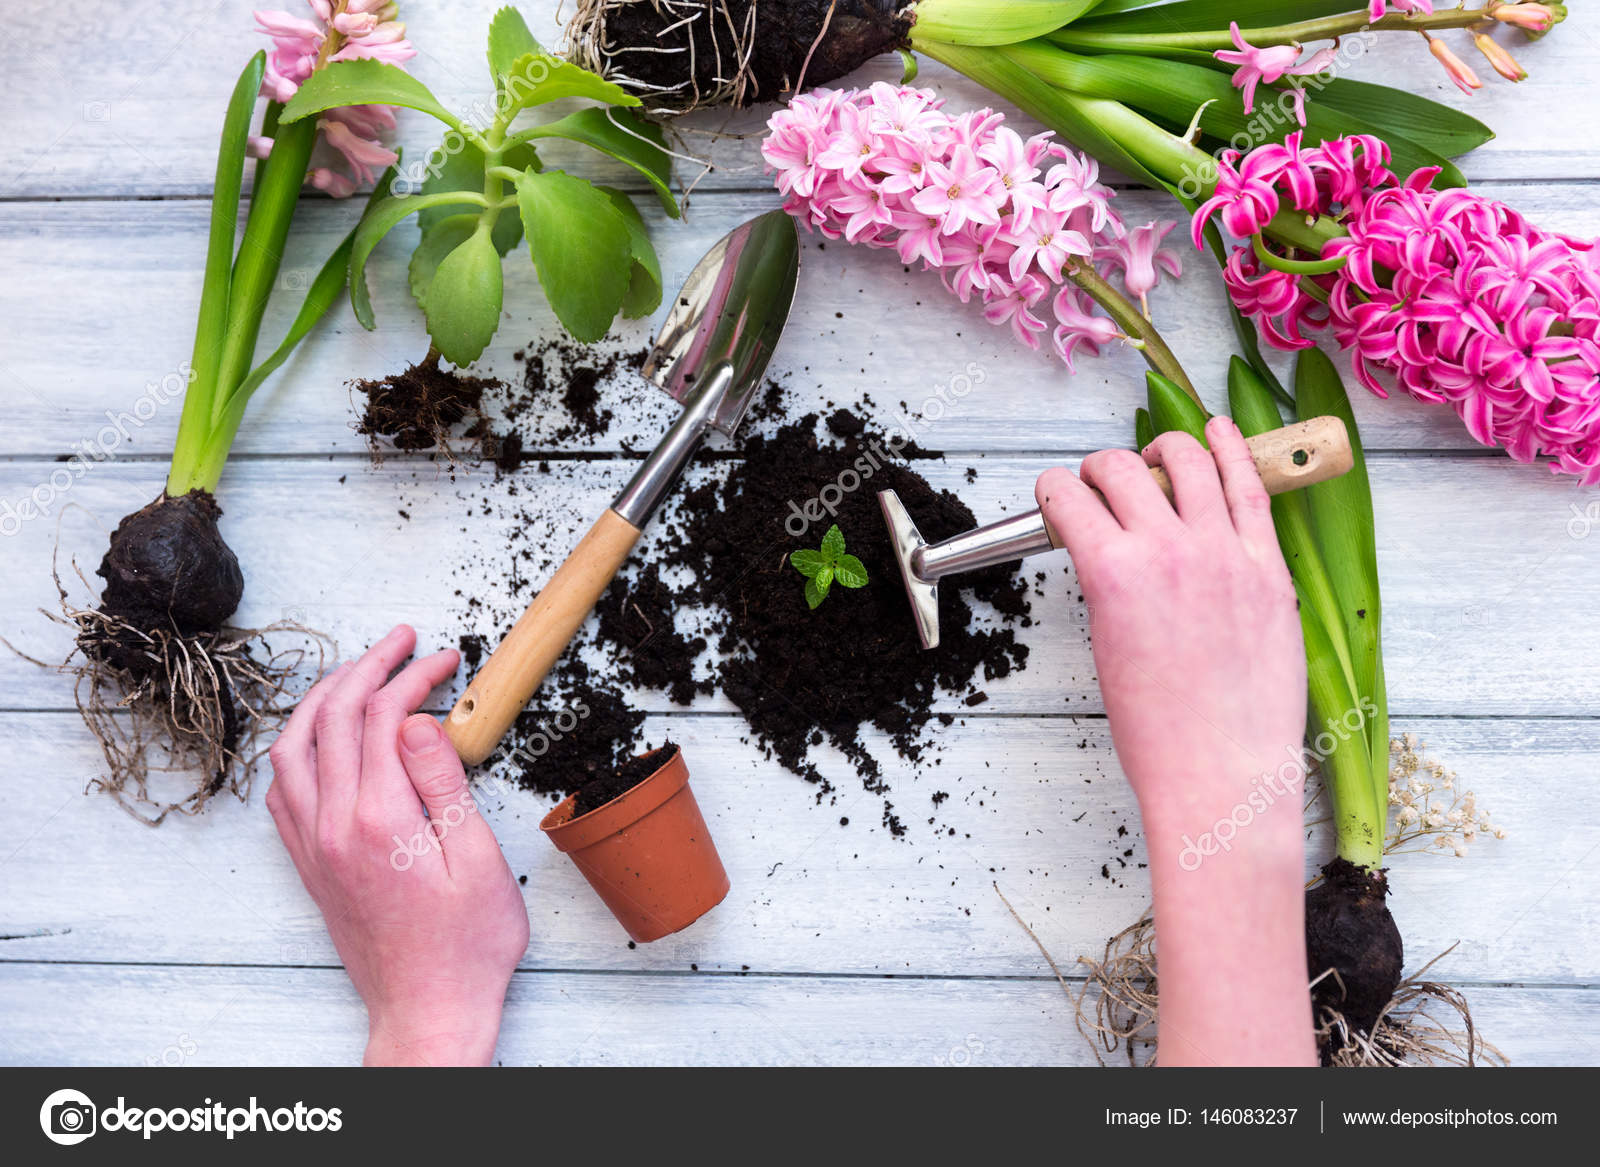 Workspace planting spring flowers garden tools hyacinth and workspace planting spring flowers garden tools hyacinth and plants in pots on a mightylinksfo Image collections